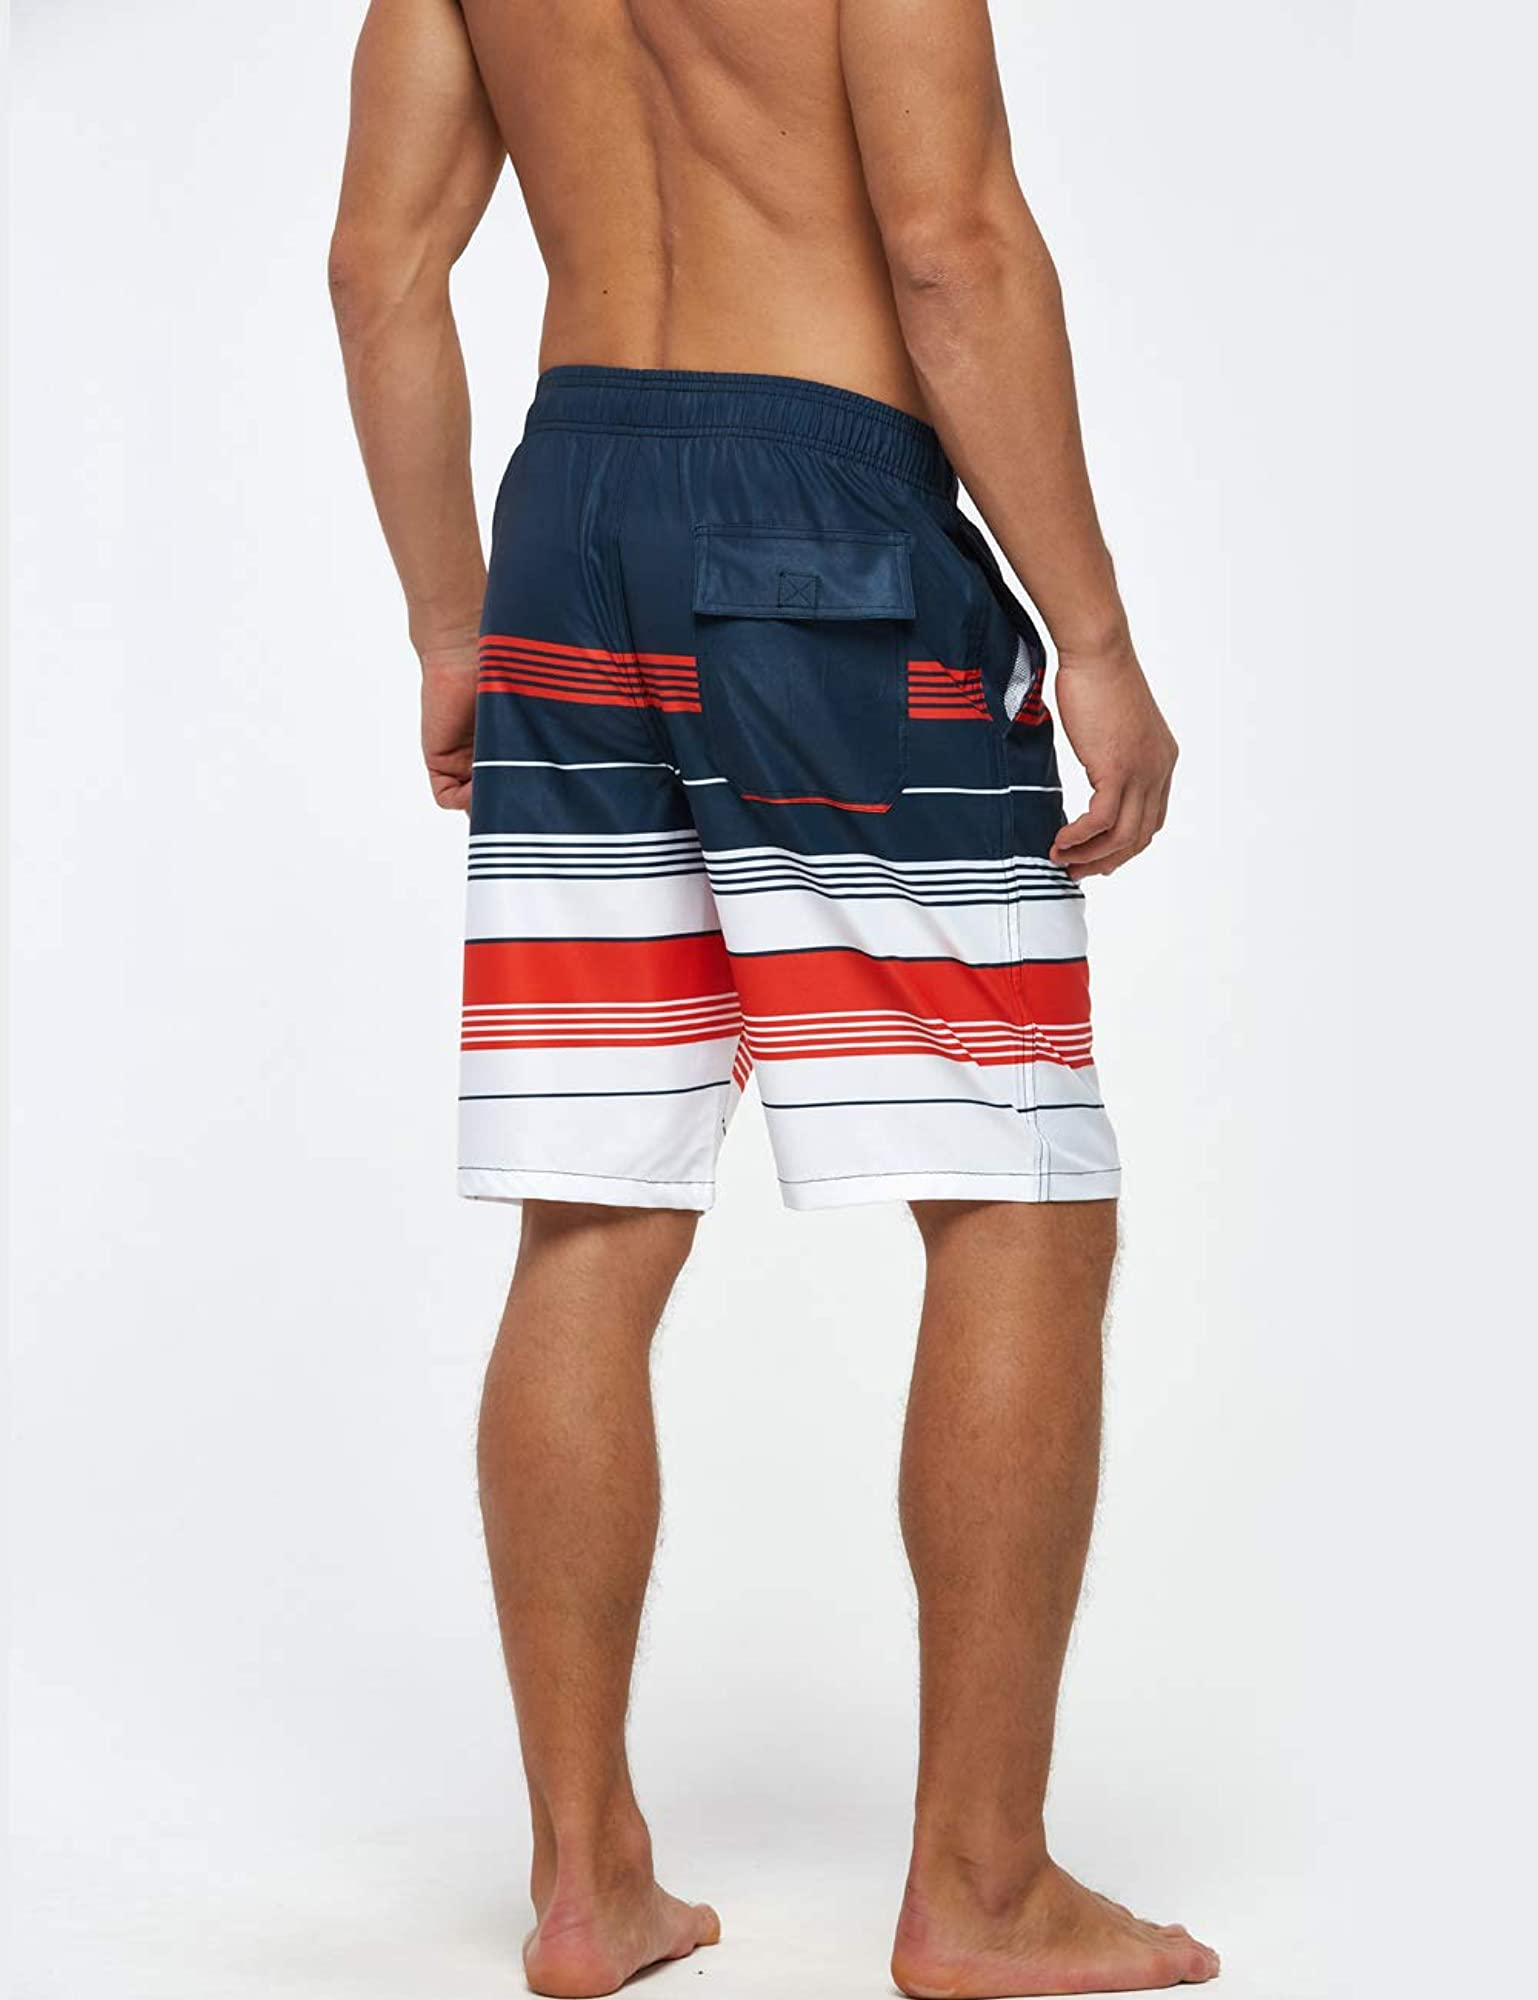 Swimwear With Mesh Lining For Men